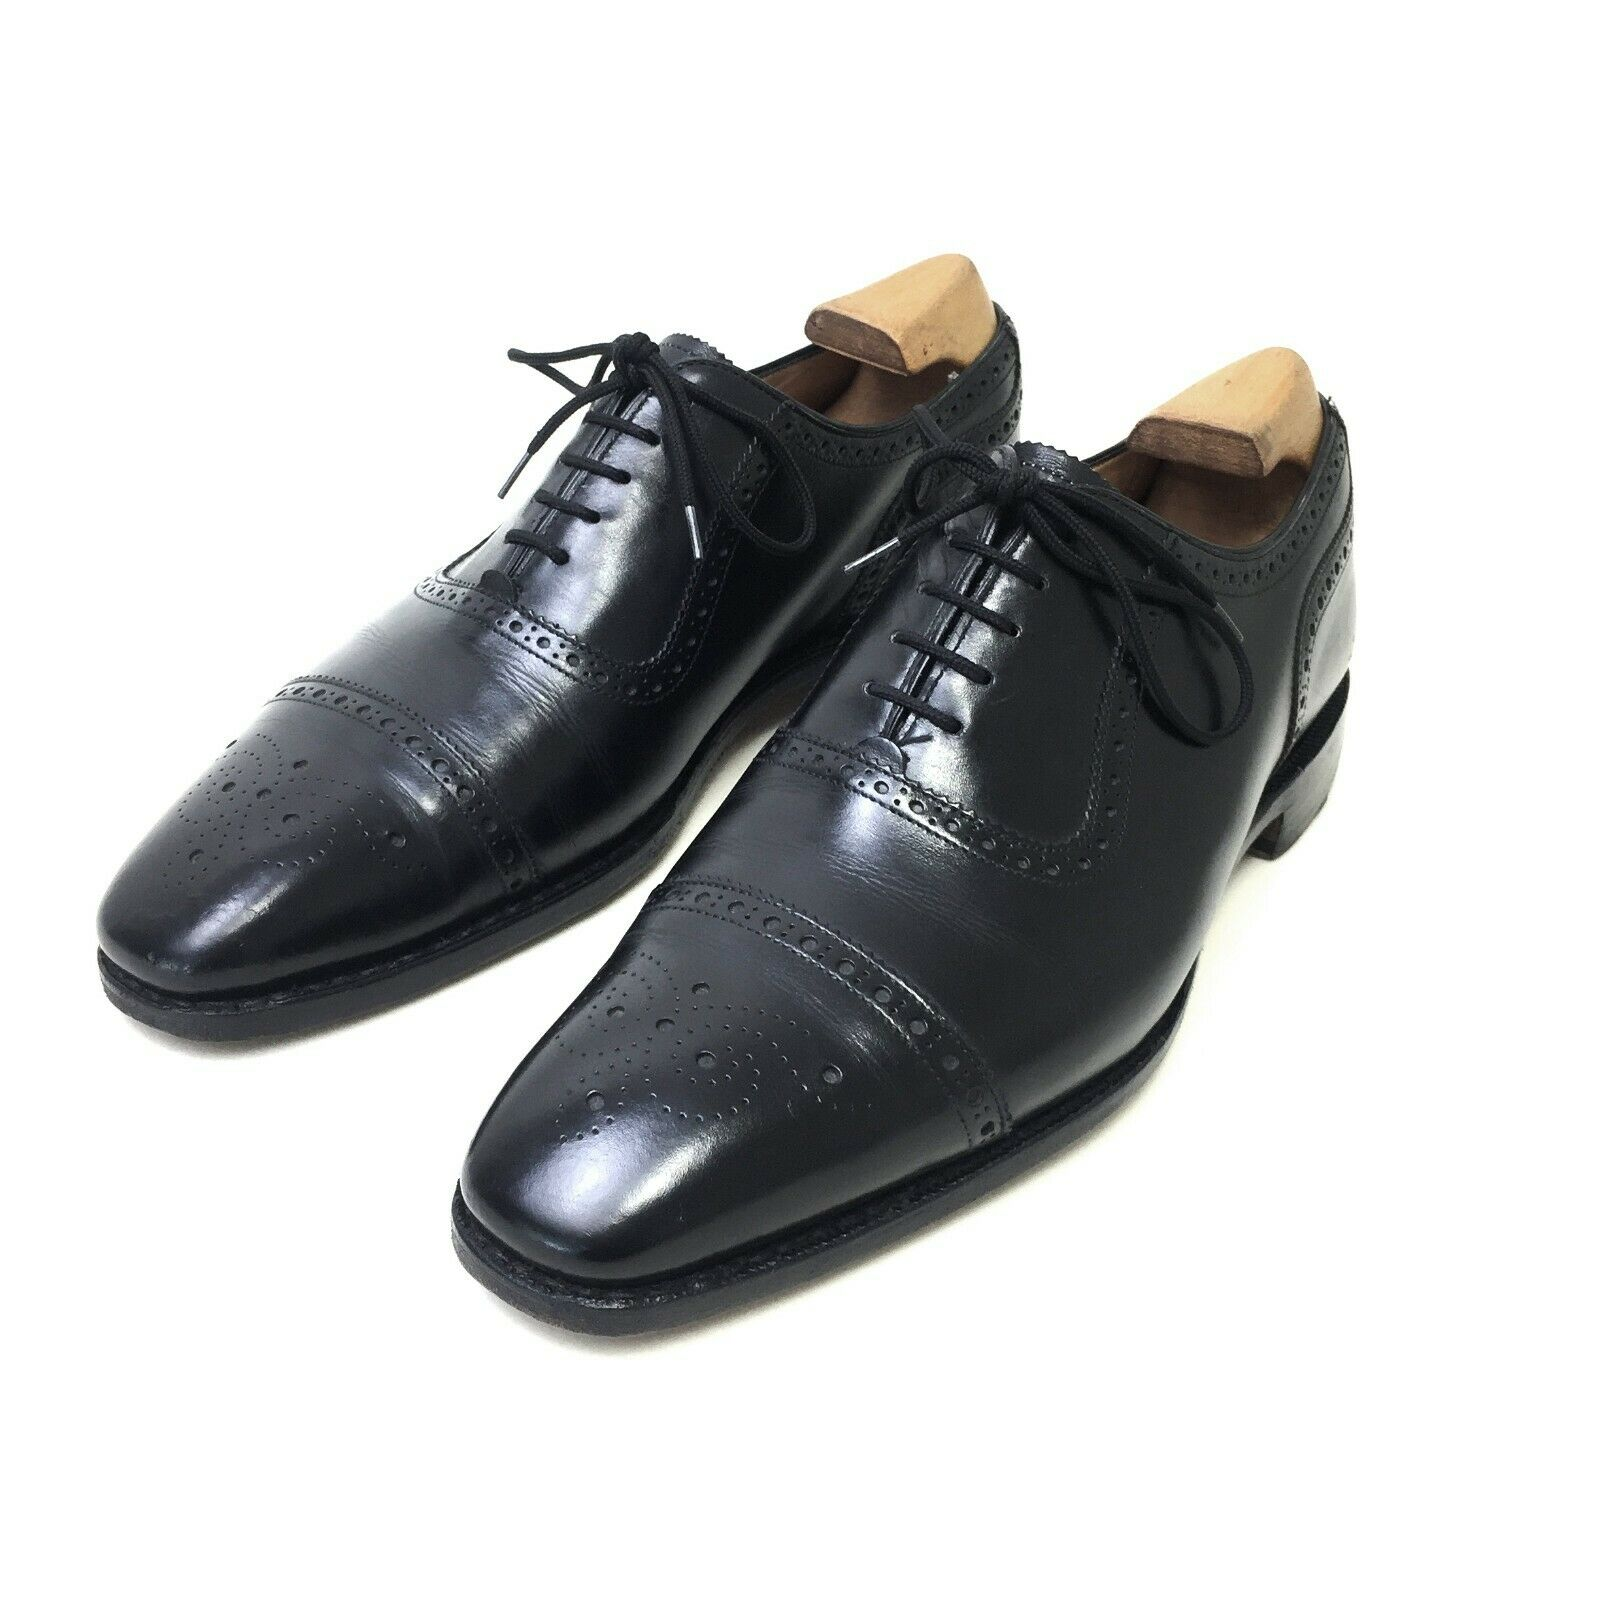 Gieves & Hawkes Oxford shoes. Black Calf leather. Size 8.5 UK, 42.5 EU